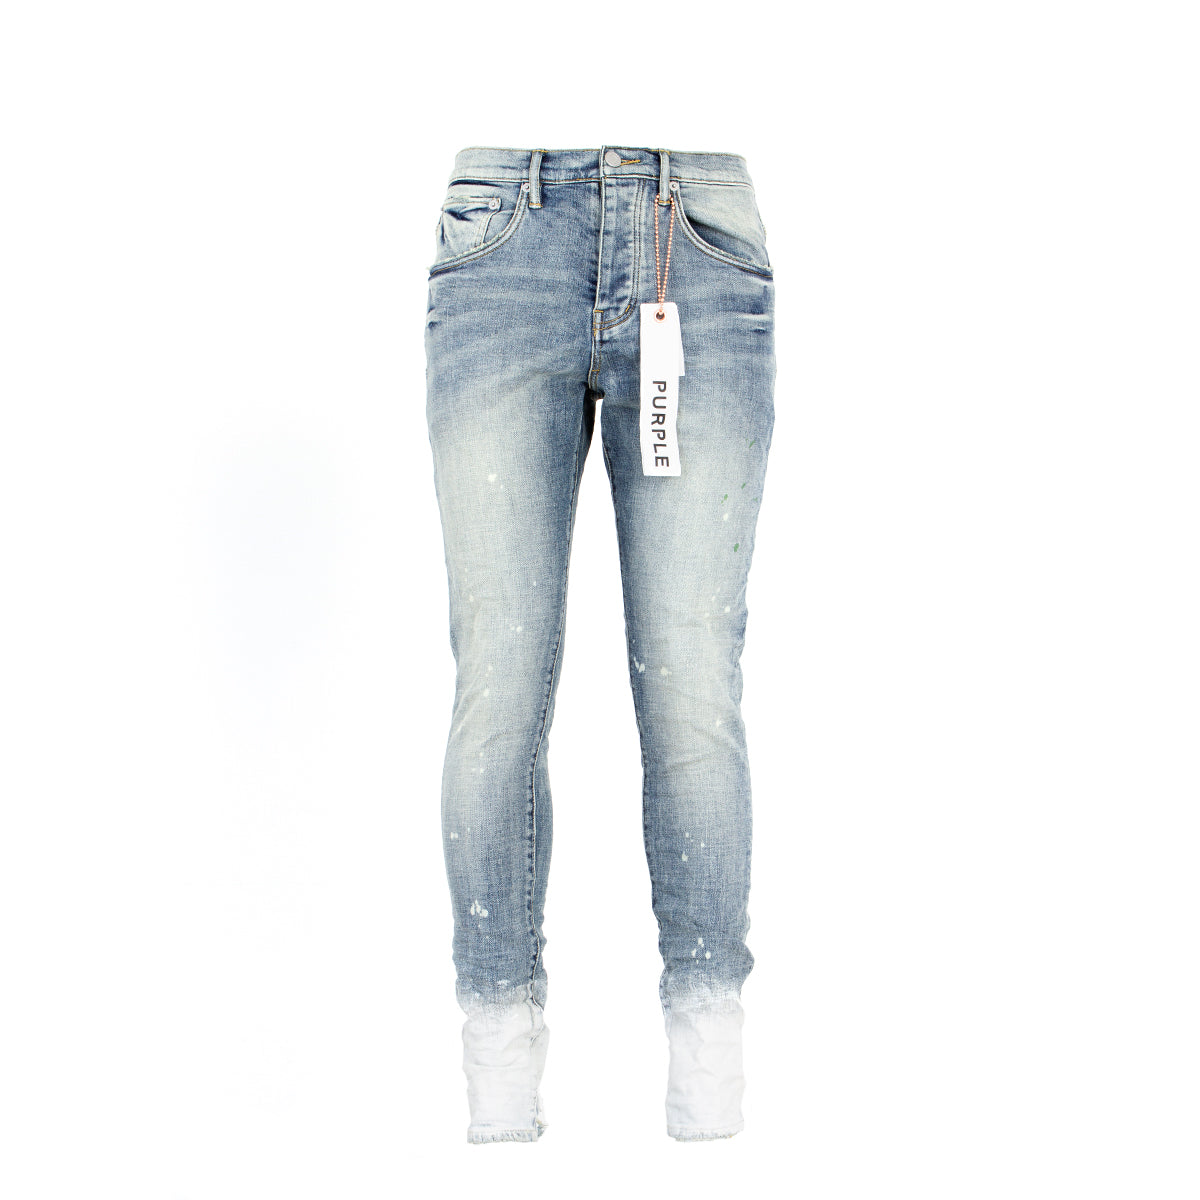 Purple Brand Denim P002 Light Indigo Bleached Hem Designer Jeans